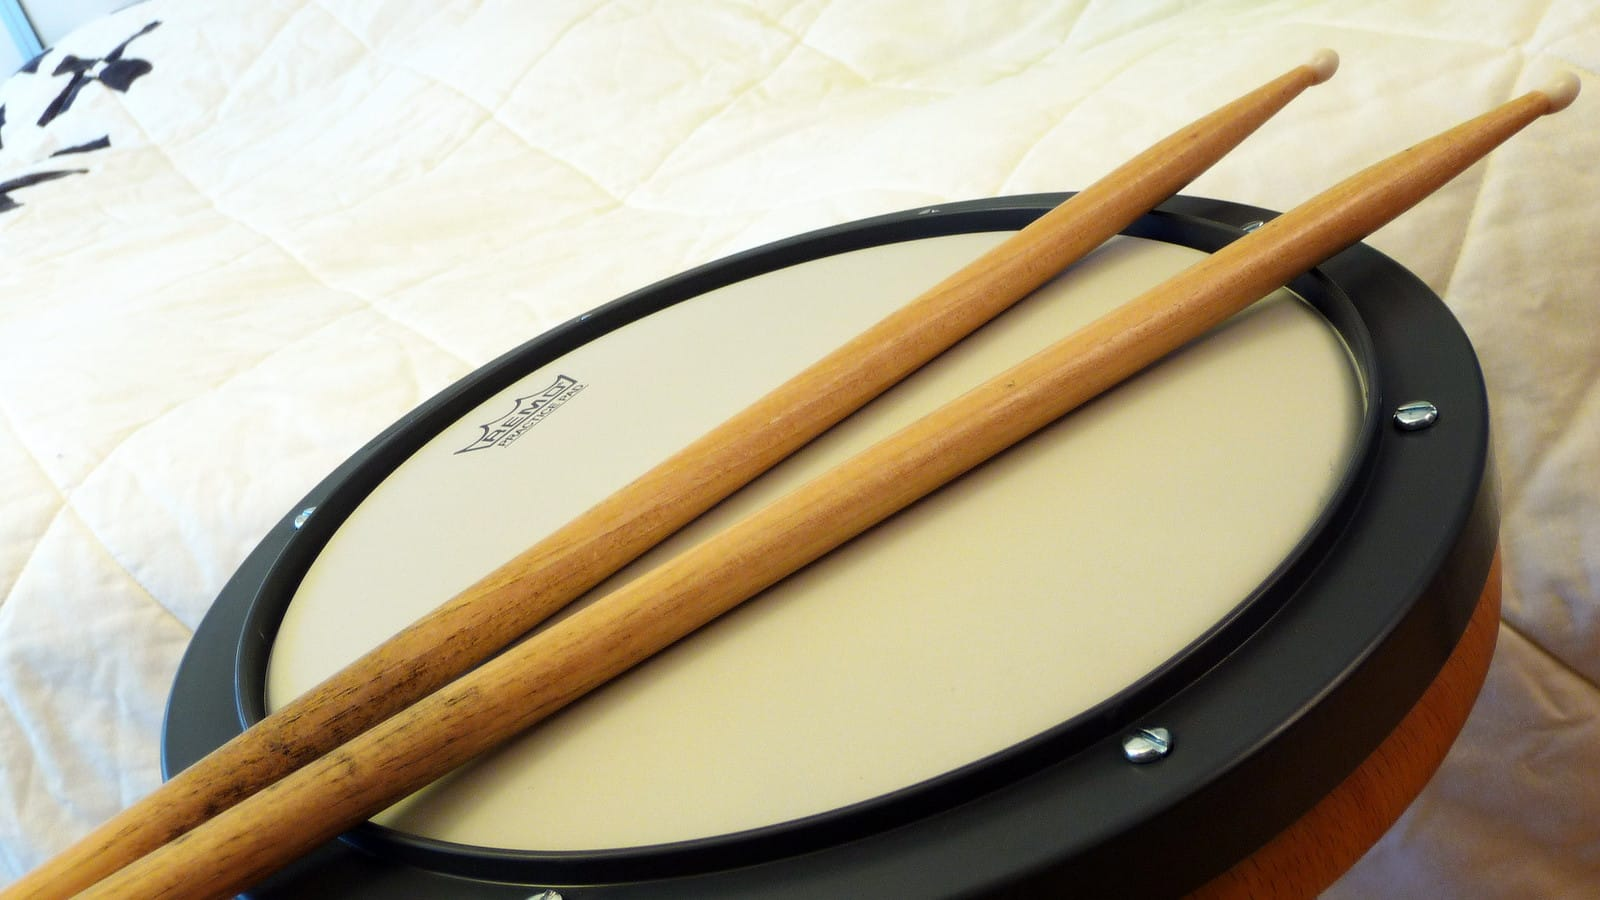 The Best Drum Practice Pads in 2020